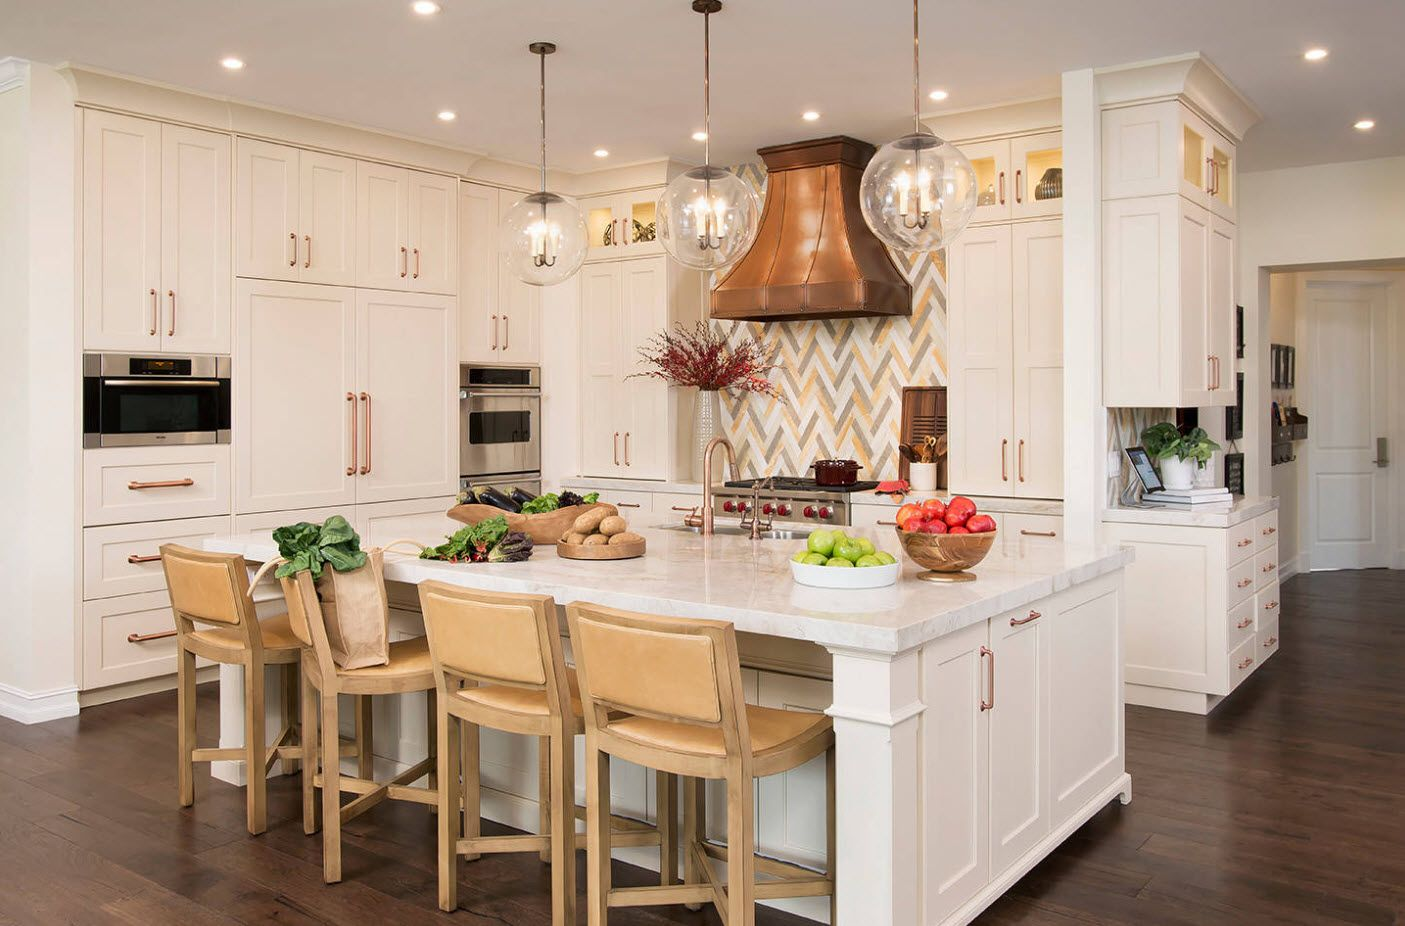 40 Square Feet Kitchen Modern Design Ideas & Layout Types. Rustic styled room with dome extractor